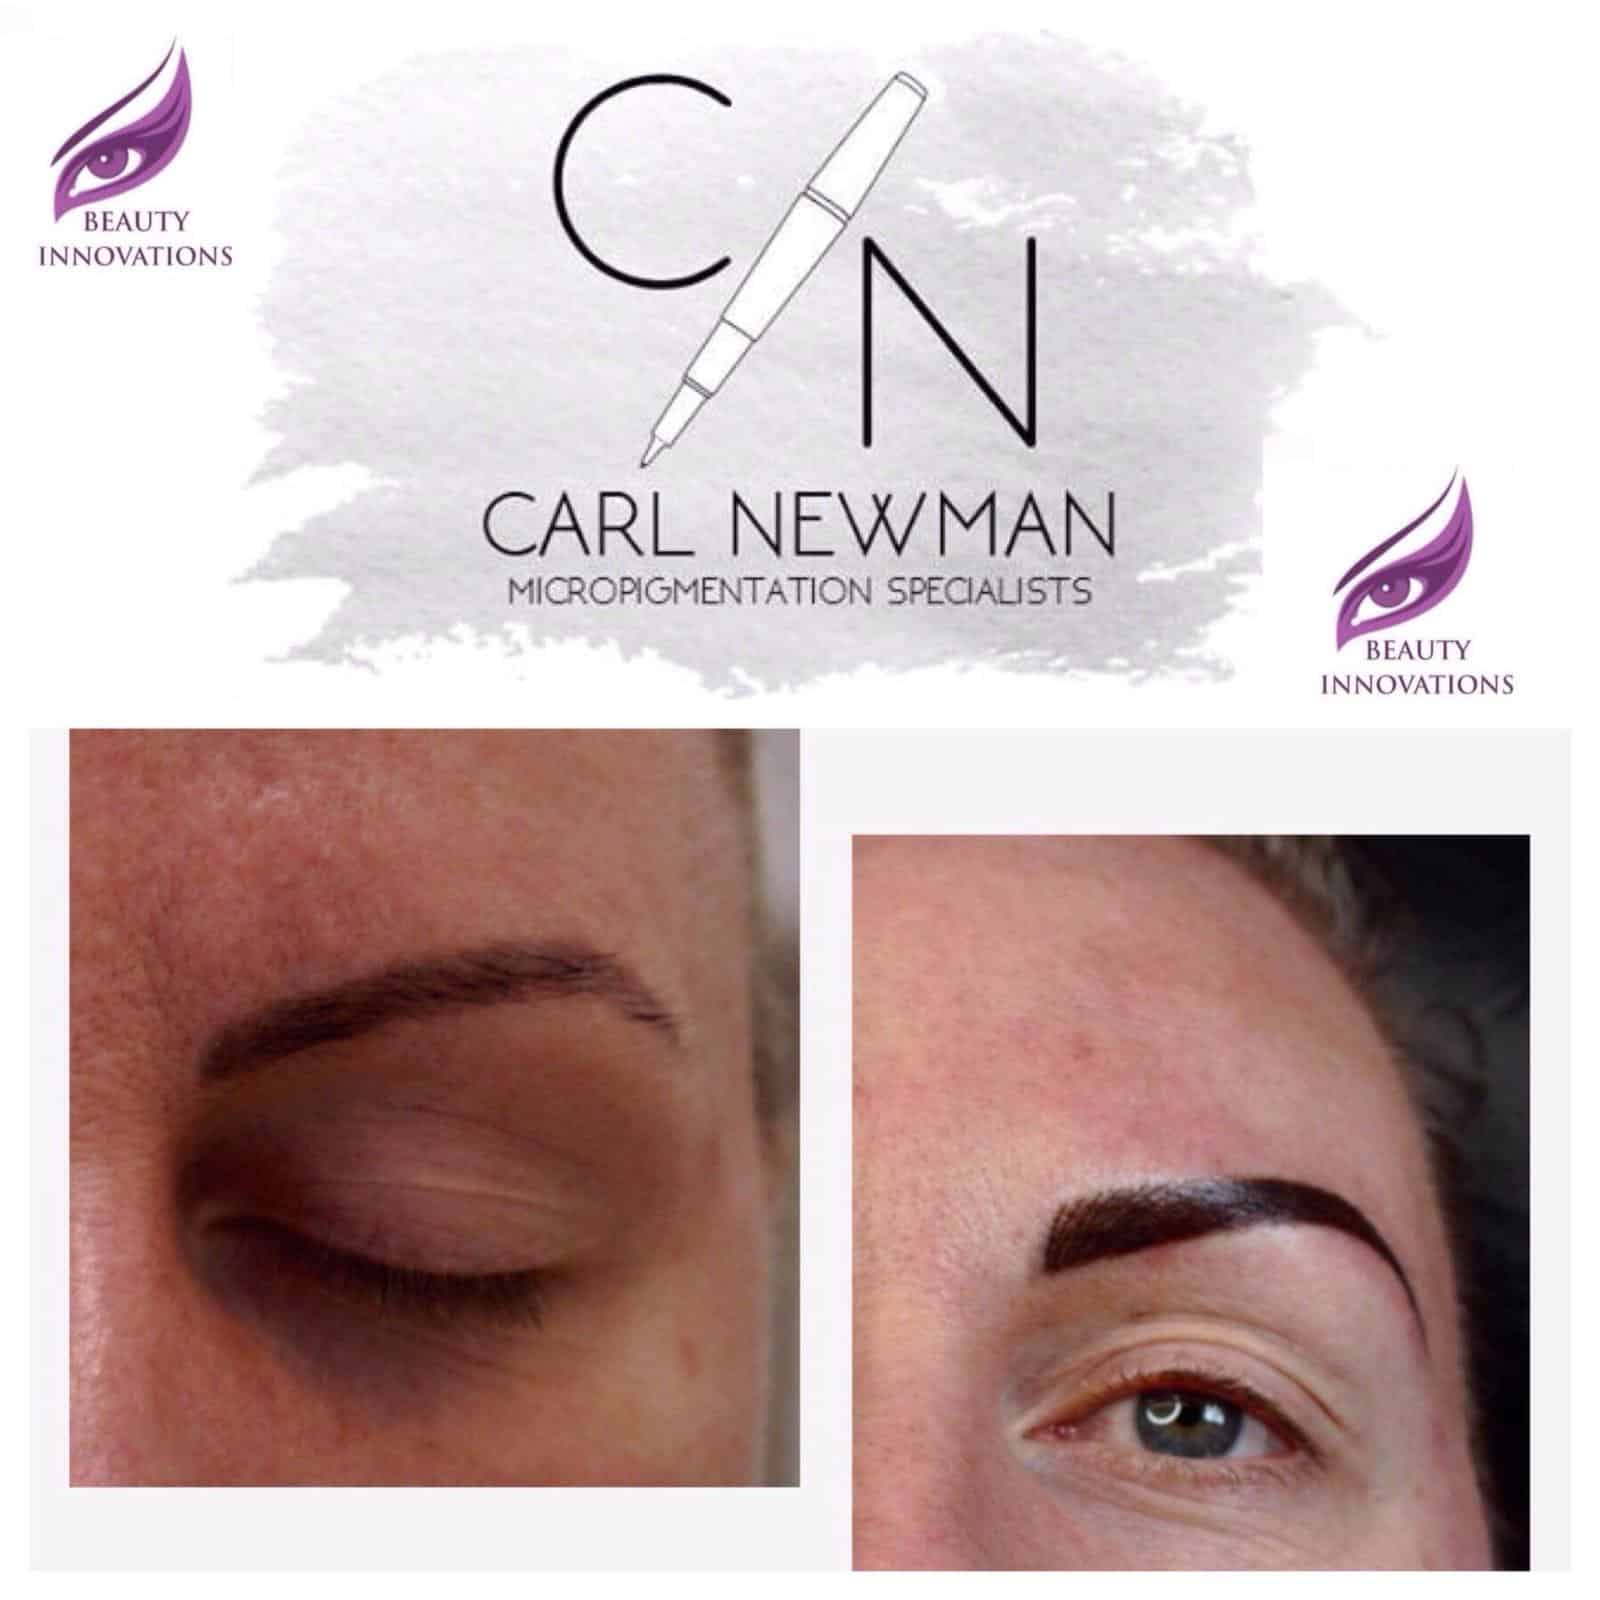 IMG-20190816-WA0028 Gallery for Semi-Permanent Make-up -The Scalp  & Micro-pigmentation Experts Swindon